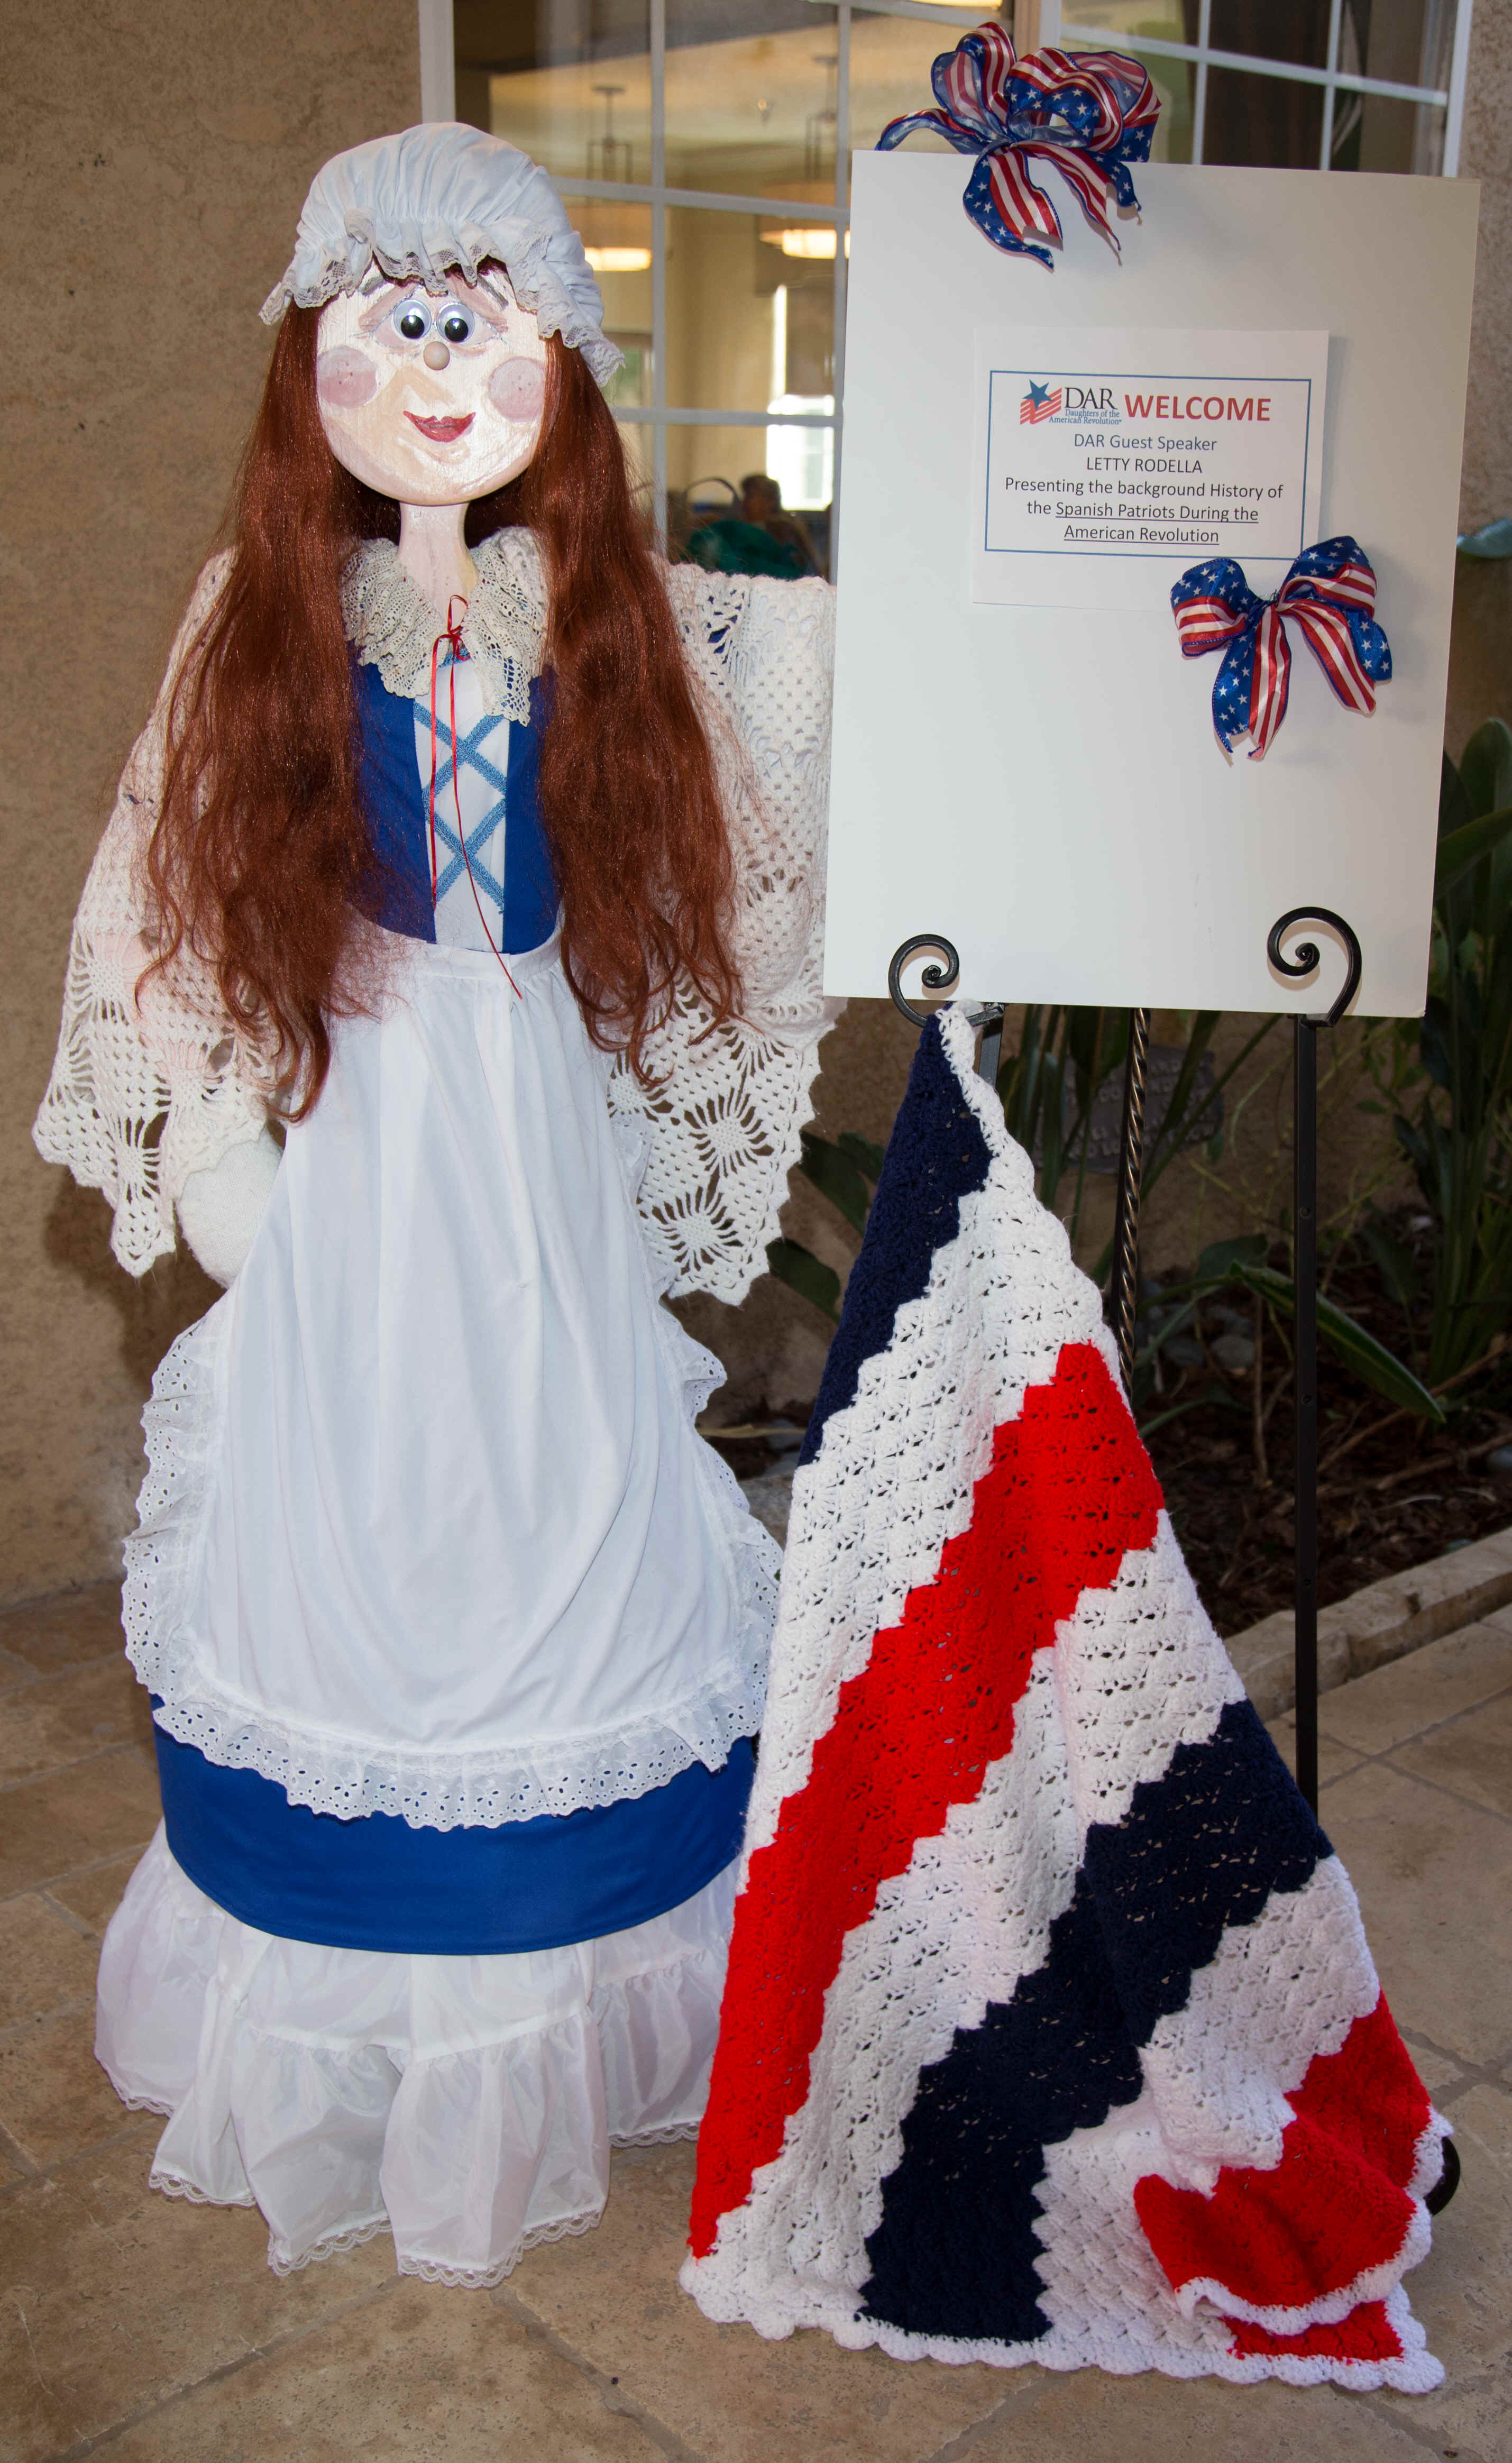 Somos primos letty rodellas presentation to the mission viejo chapter of the daughters of the american revolution california january 14 2014 fandeluxe Choice Image